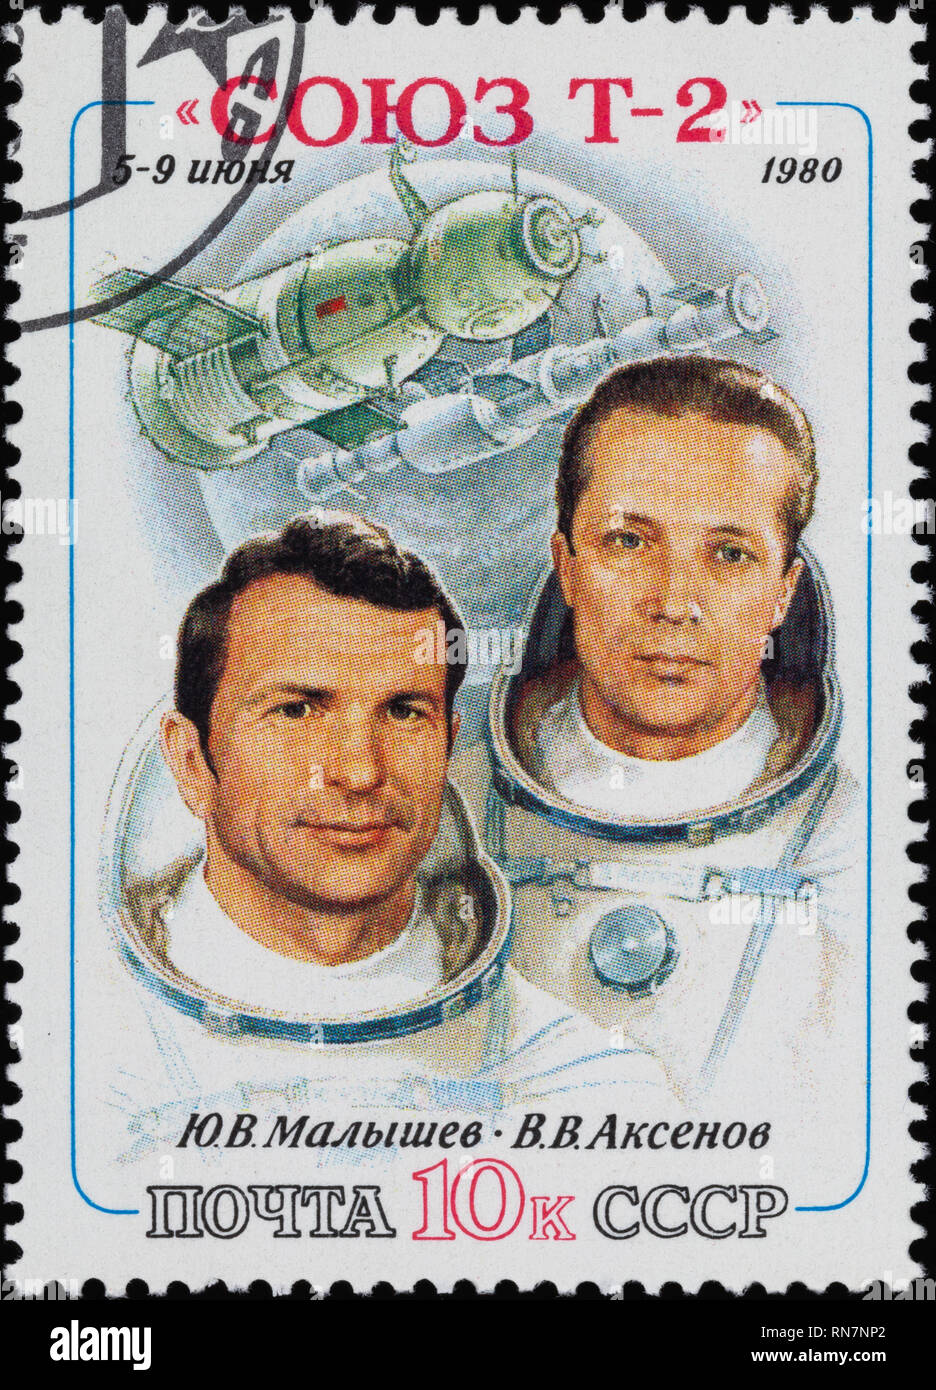 RUSSIA - CIRCA 1980: A postage stamp printed in Russia, shows portraits of cosmonauts Malyshev and Aksenov and spaceship Soyuz T-2, circa 1980. Stock Photo